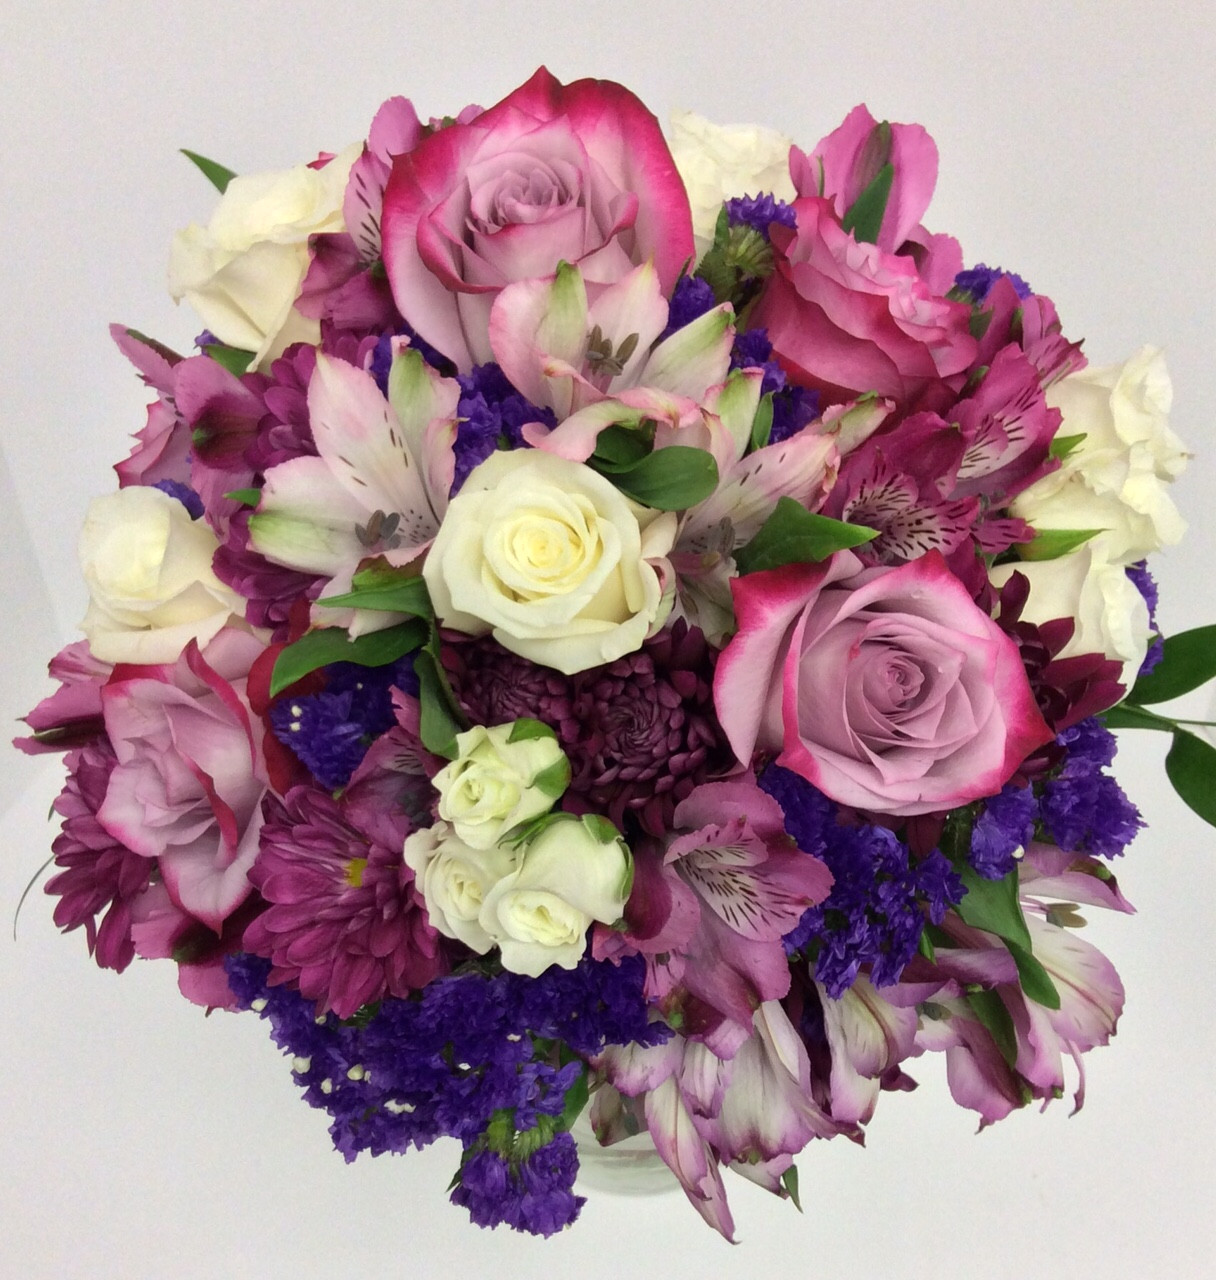 Hand tied round bouquet in purples lavenders and creams hand tied round bouquet in purples lavenders and creams izmirmasajfo